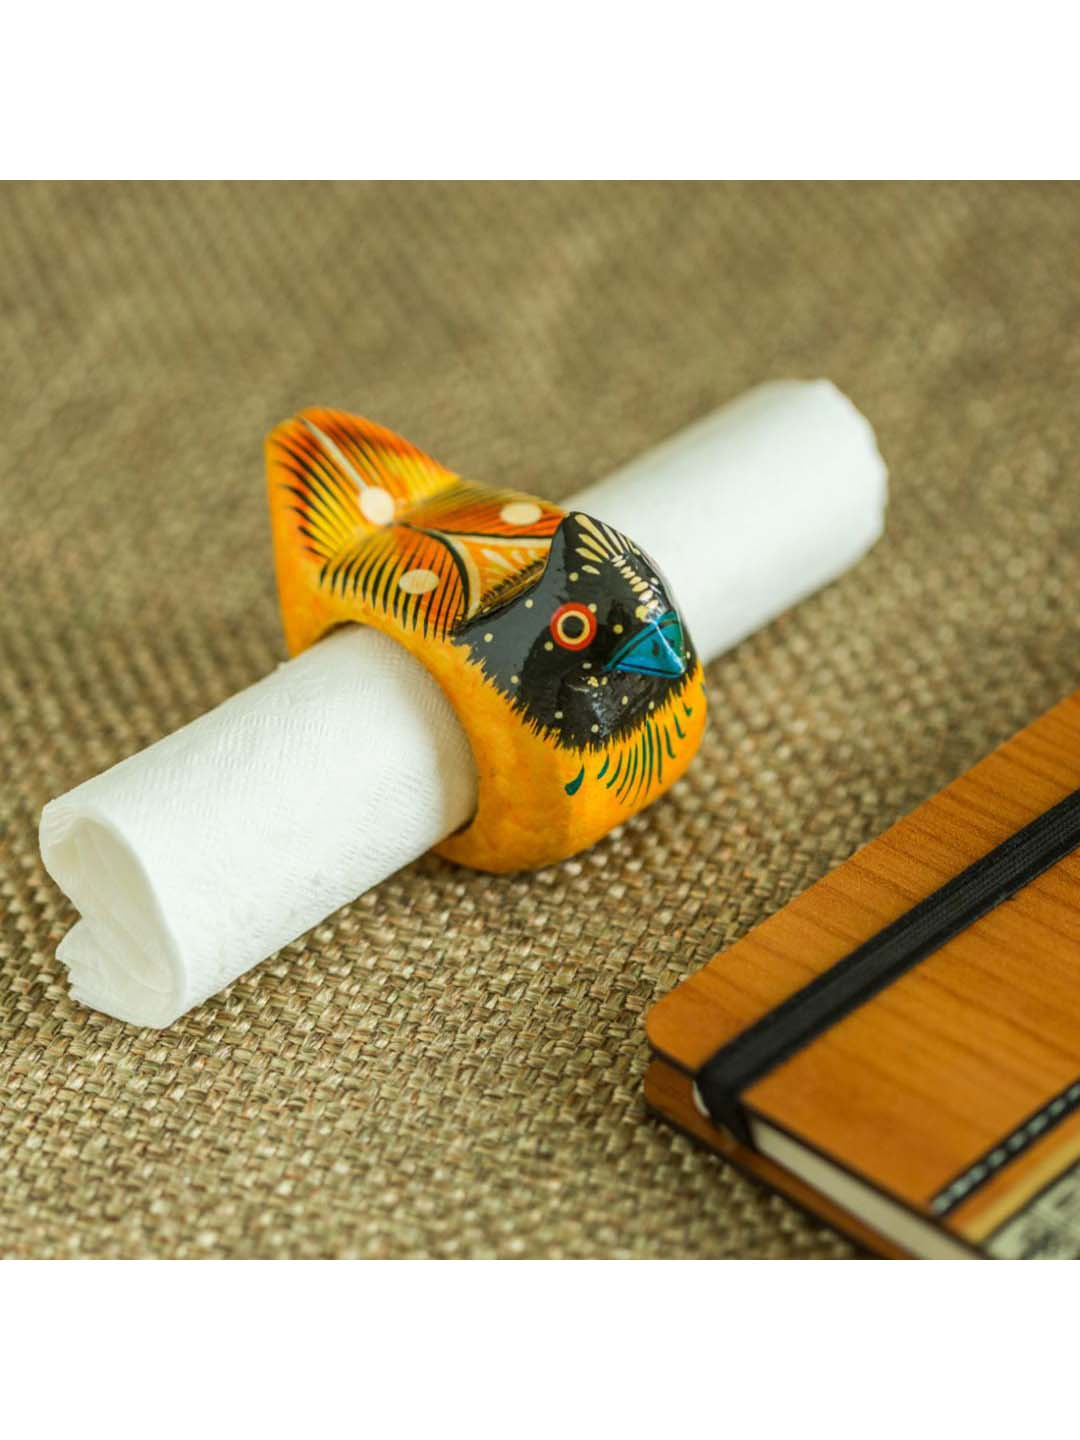 Exclusivelane Handmade Hand Painted Bird Napkin Ring In Wood From Exclusivelane At Best Prices On Tata Cliq